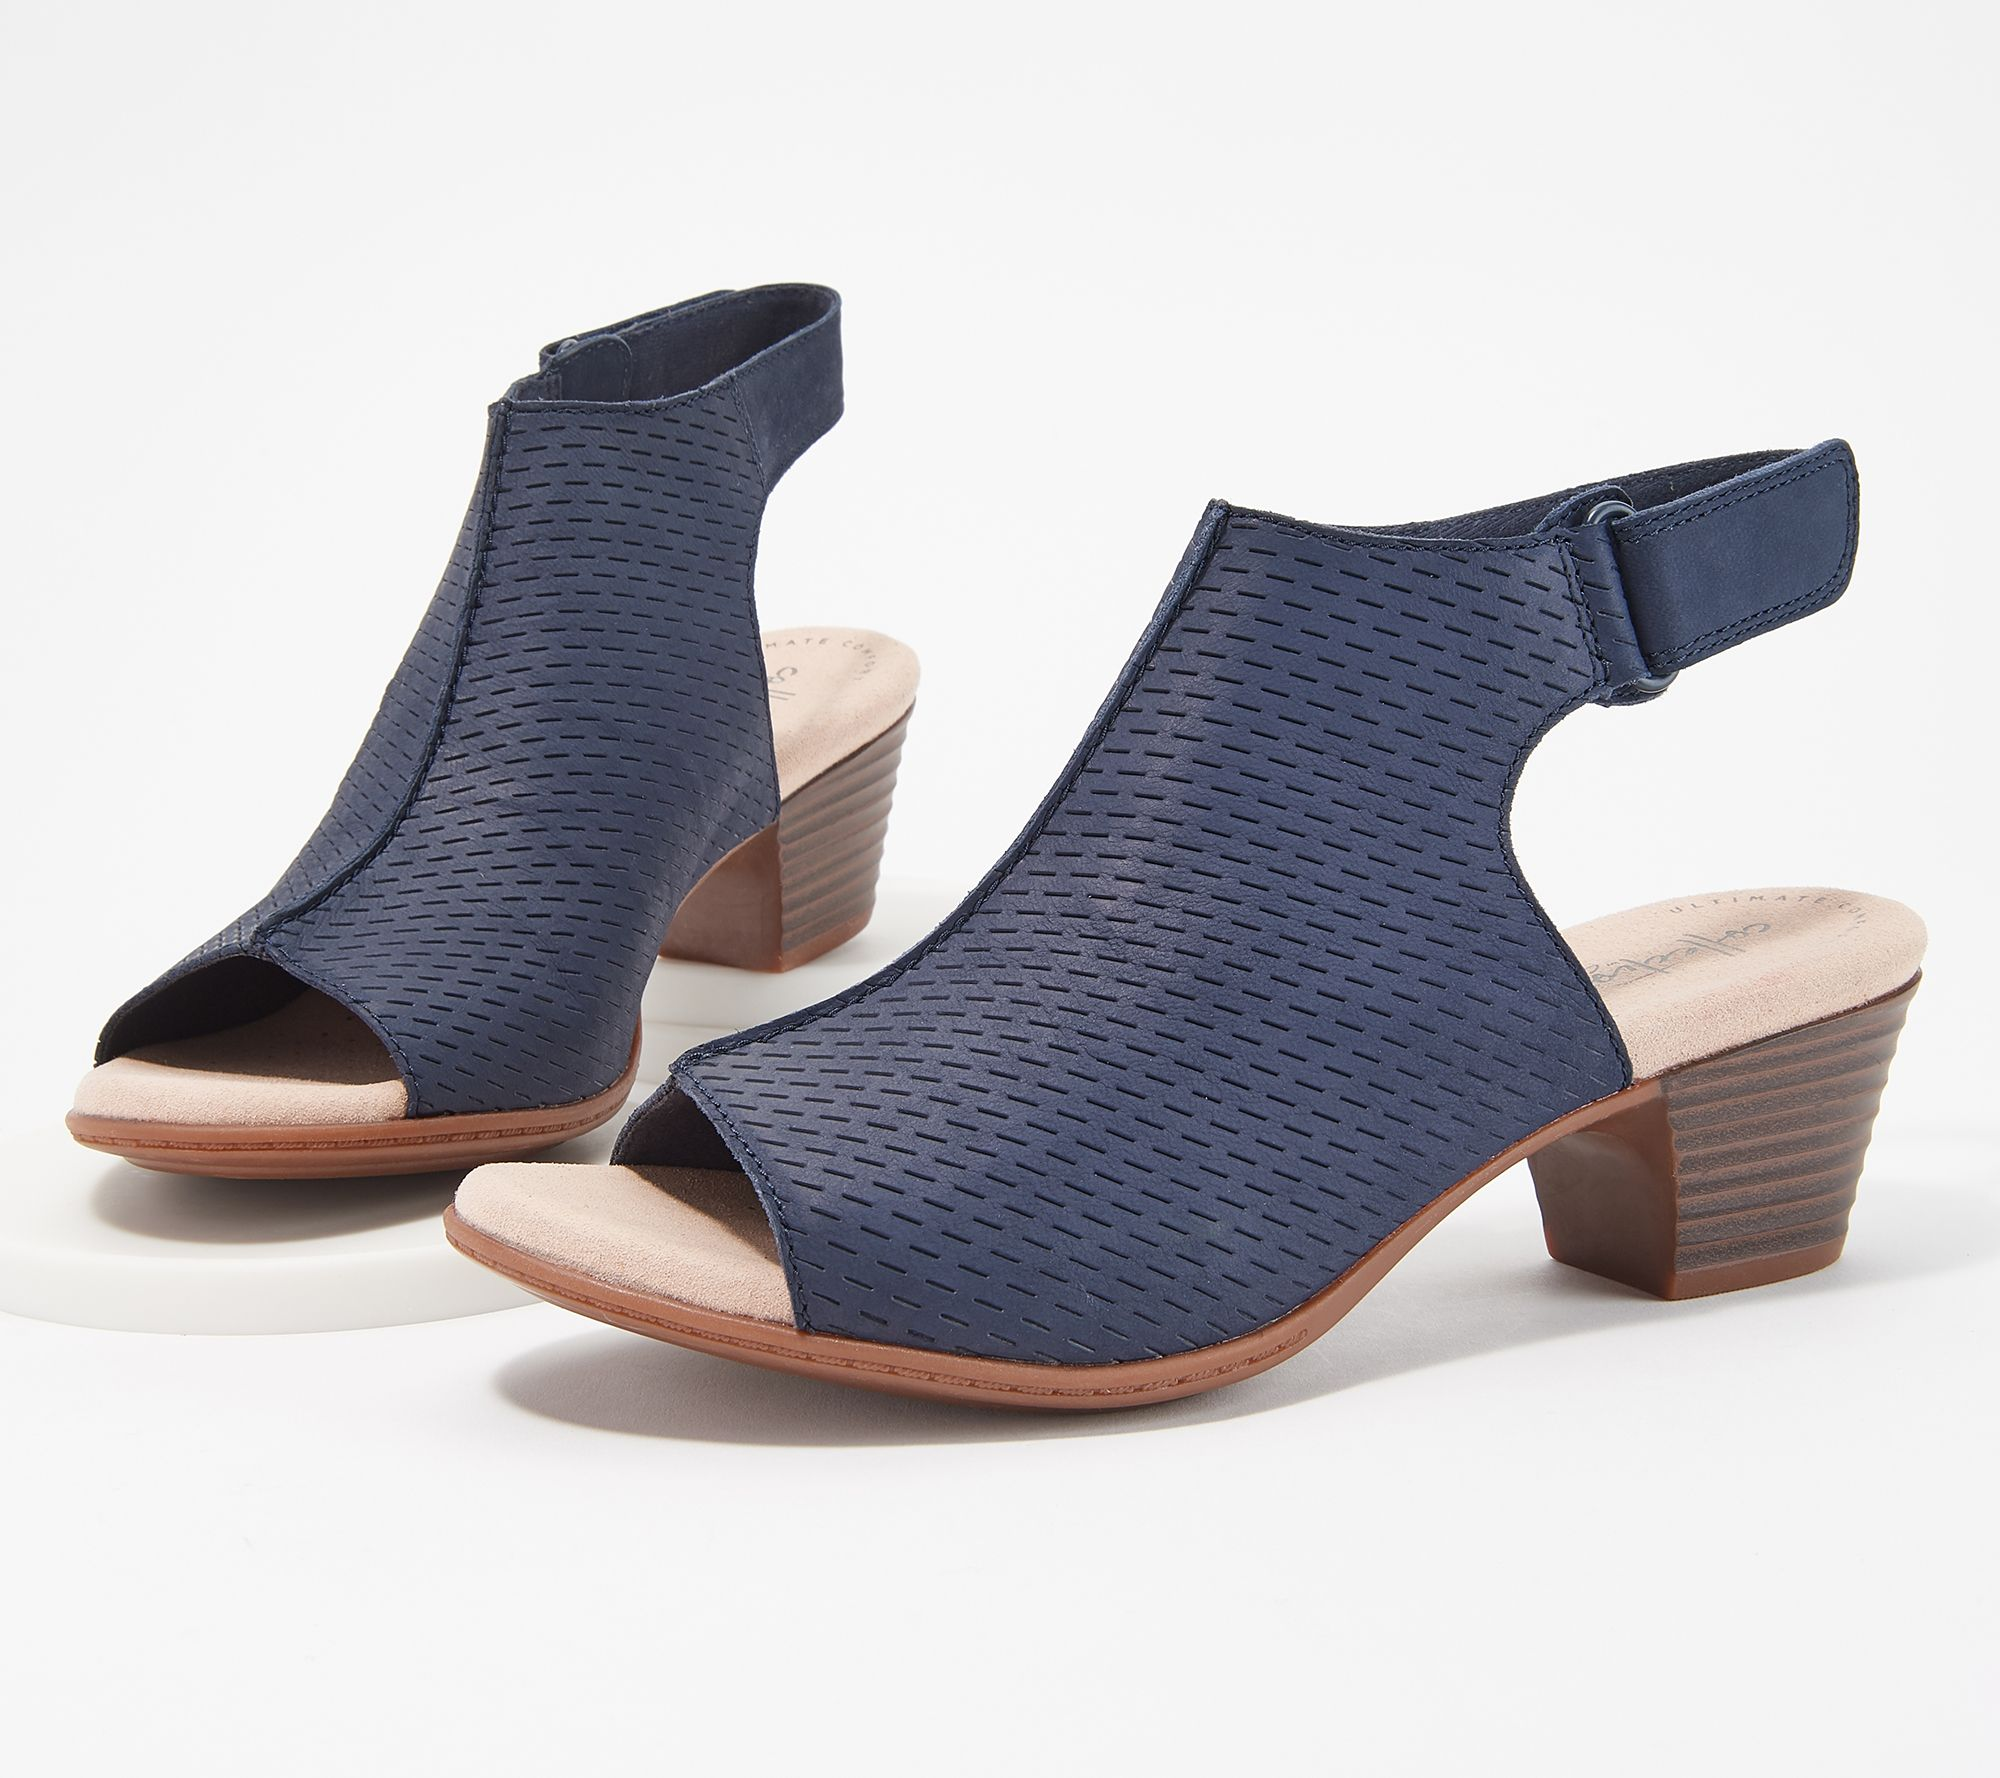 05a77c8c71d Clarks Collection Leather Heeled Sandals- Valarie James — QVC.com